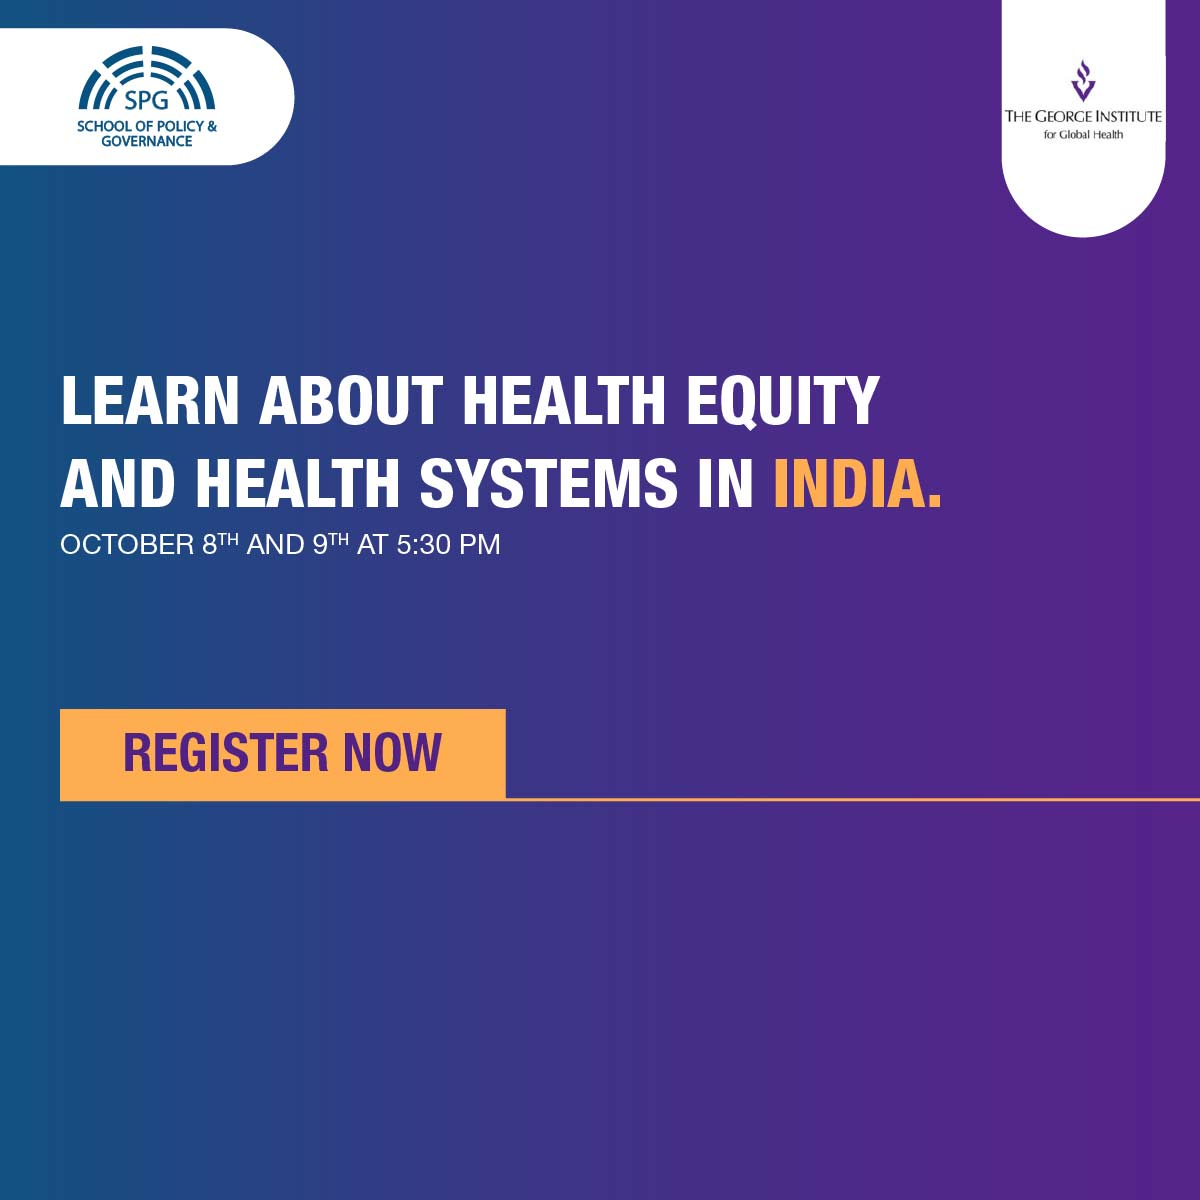 Only 3 weeks to sign up for Health Equity and Systems program in partnership with @georgeinstitute! Free and paid options available. Sign up at https://t.co/cGLzc2ilI3   #healthcare #COVID19 #HealthyNation https://t.co/VvI1h4mRxM